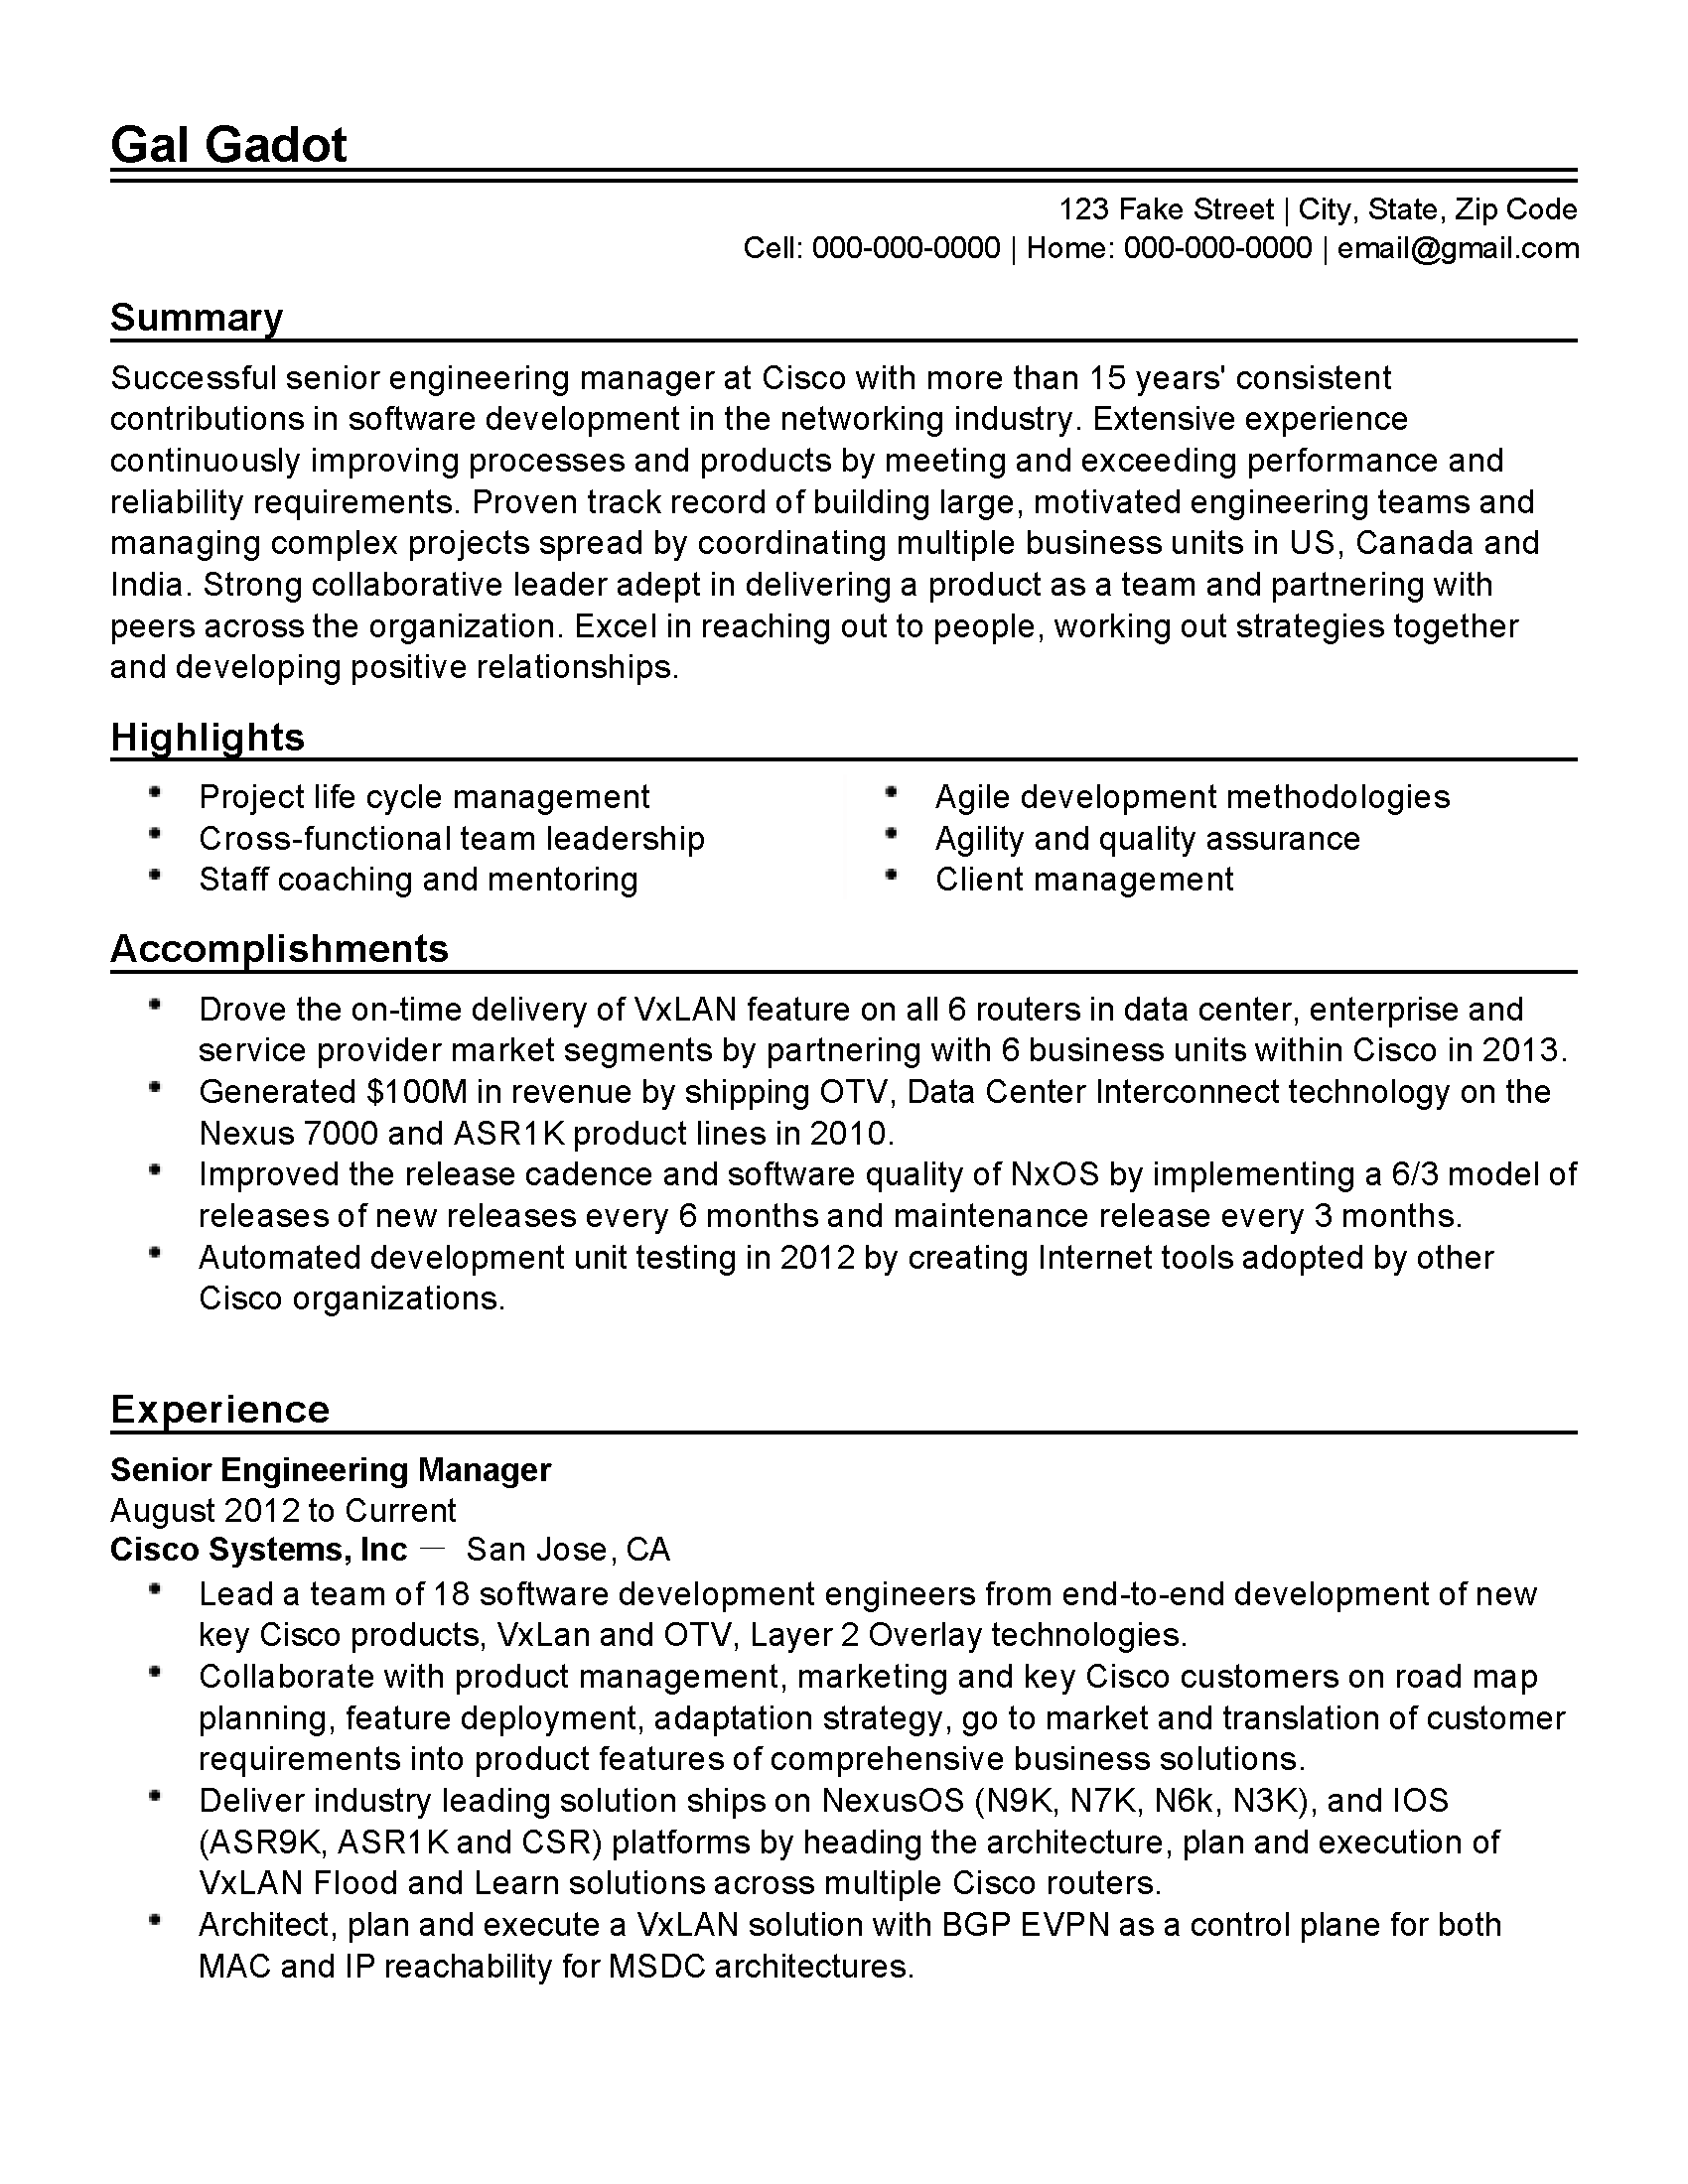 Senior Management Resume Templates Senior Management Resume Templates Gallery Professional